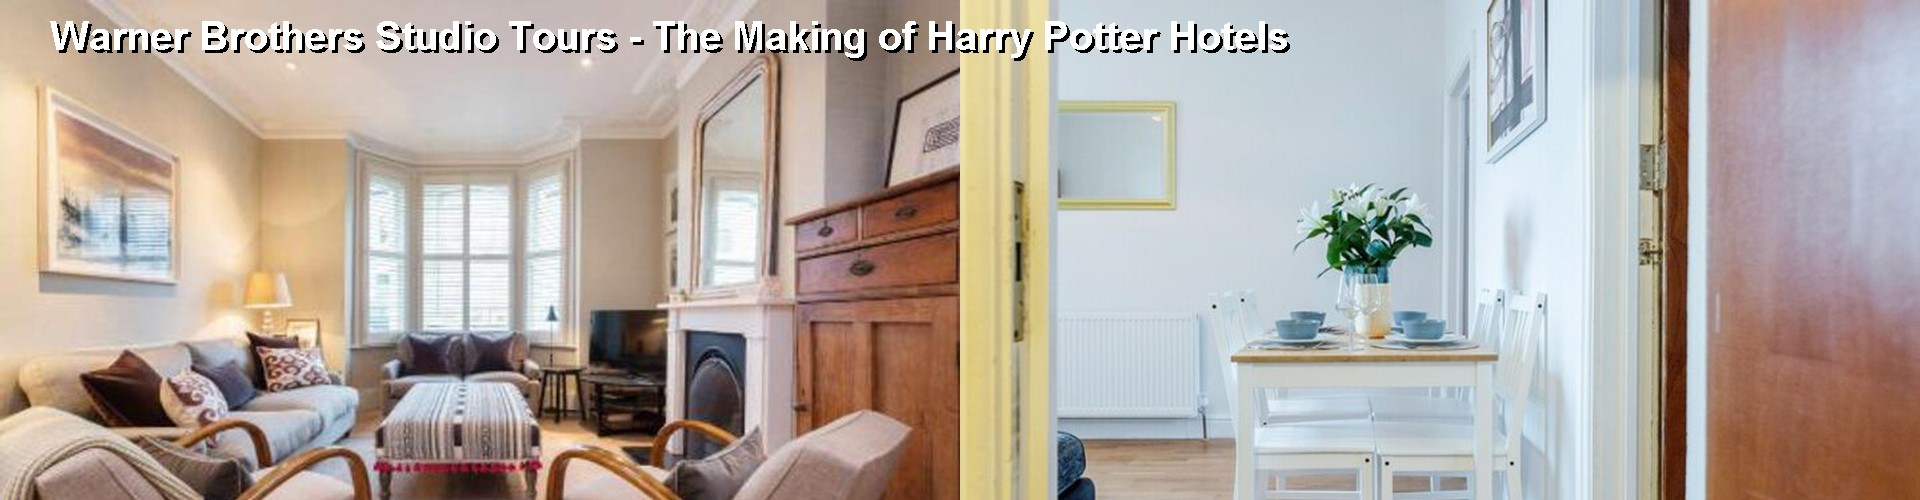 5 Best Hotels near Warner Brothers Studio Tours - The Making of Harry Potter